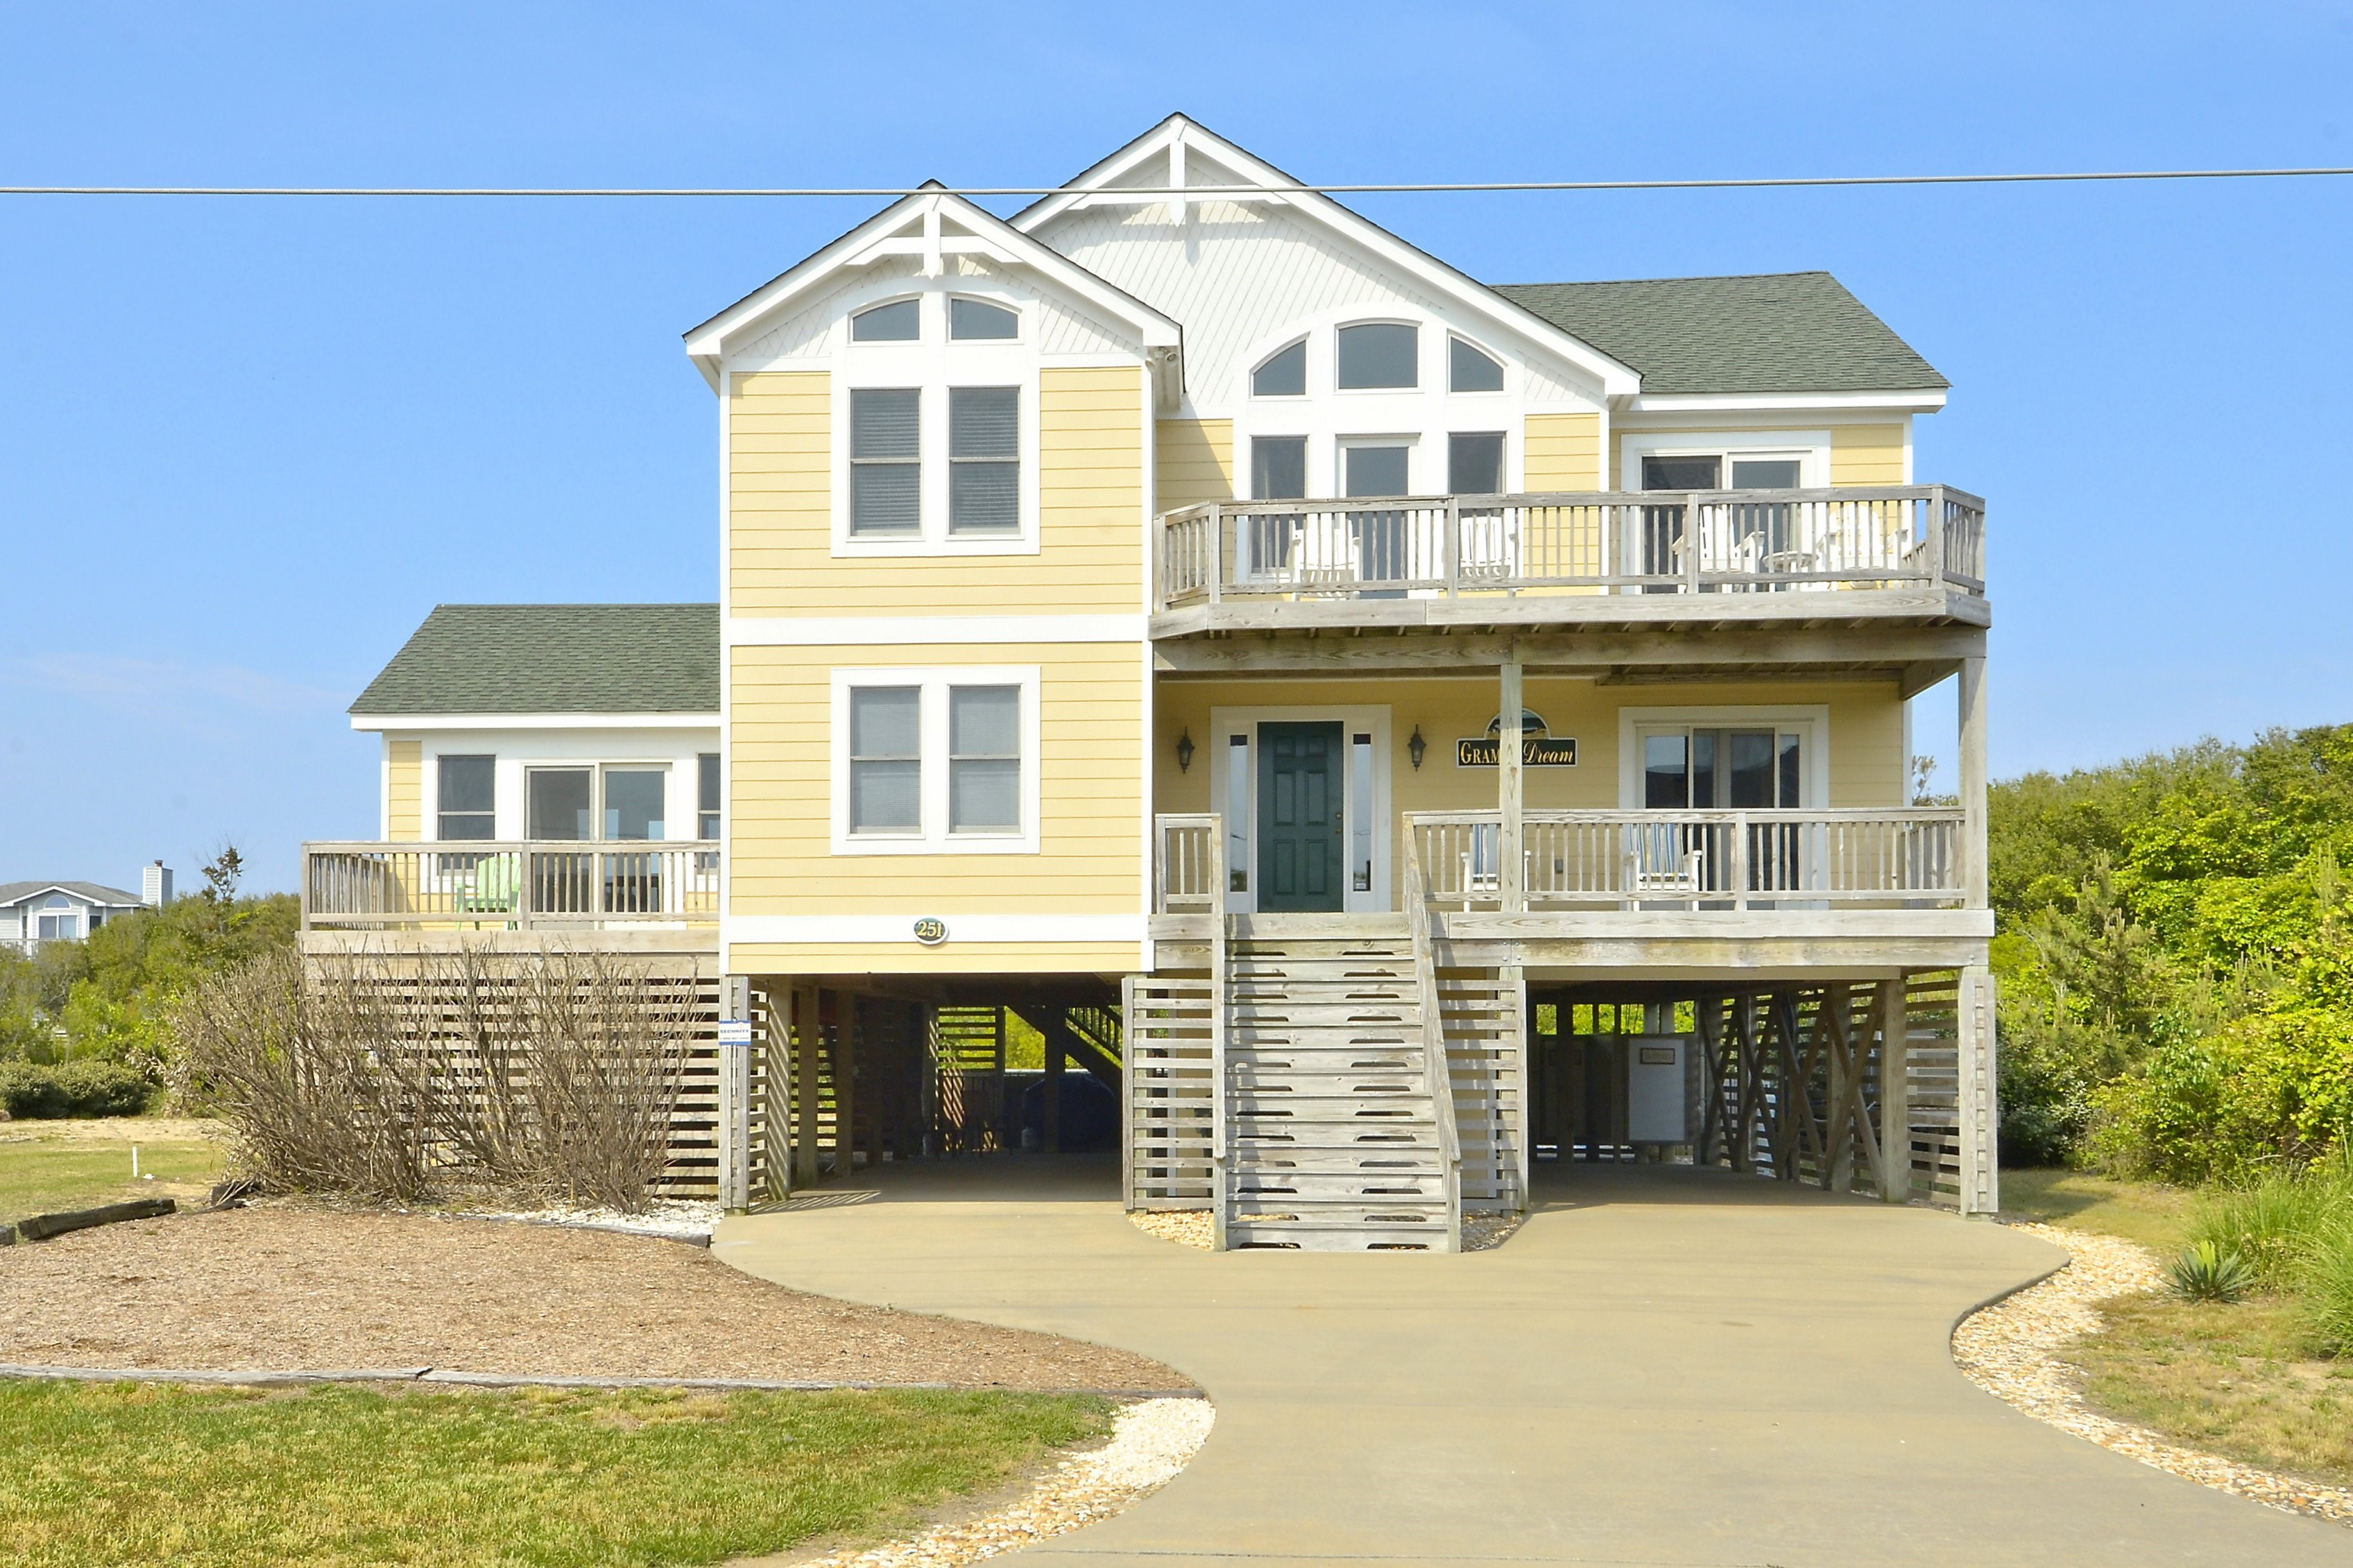 Gramp's Dream Vacation Rental in the OBX